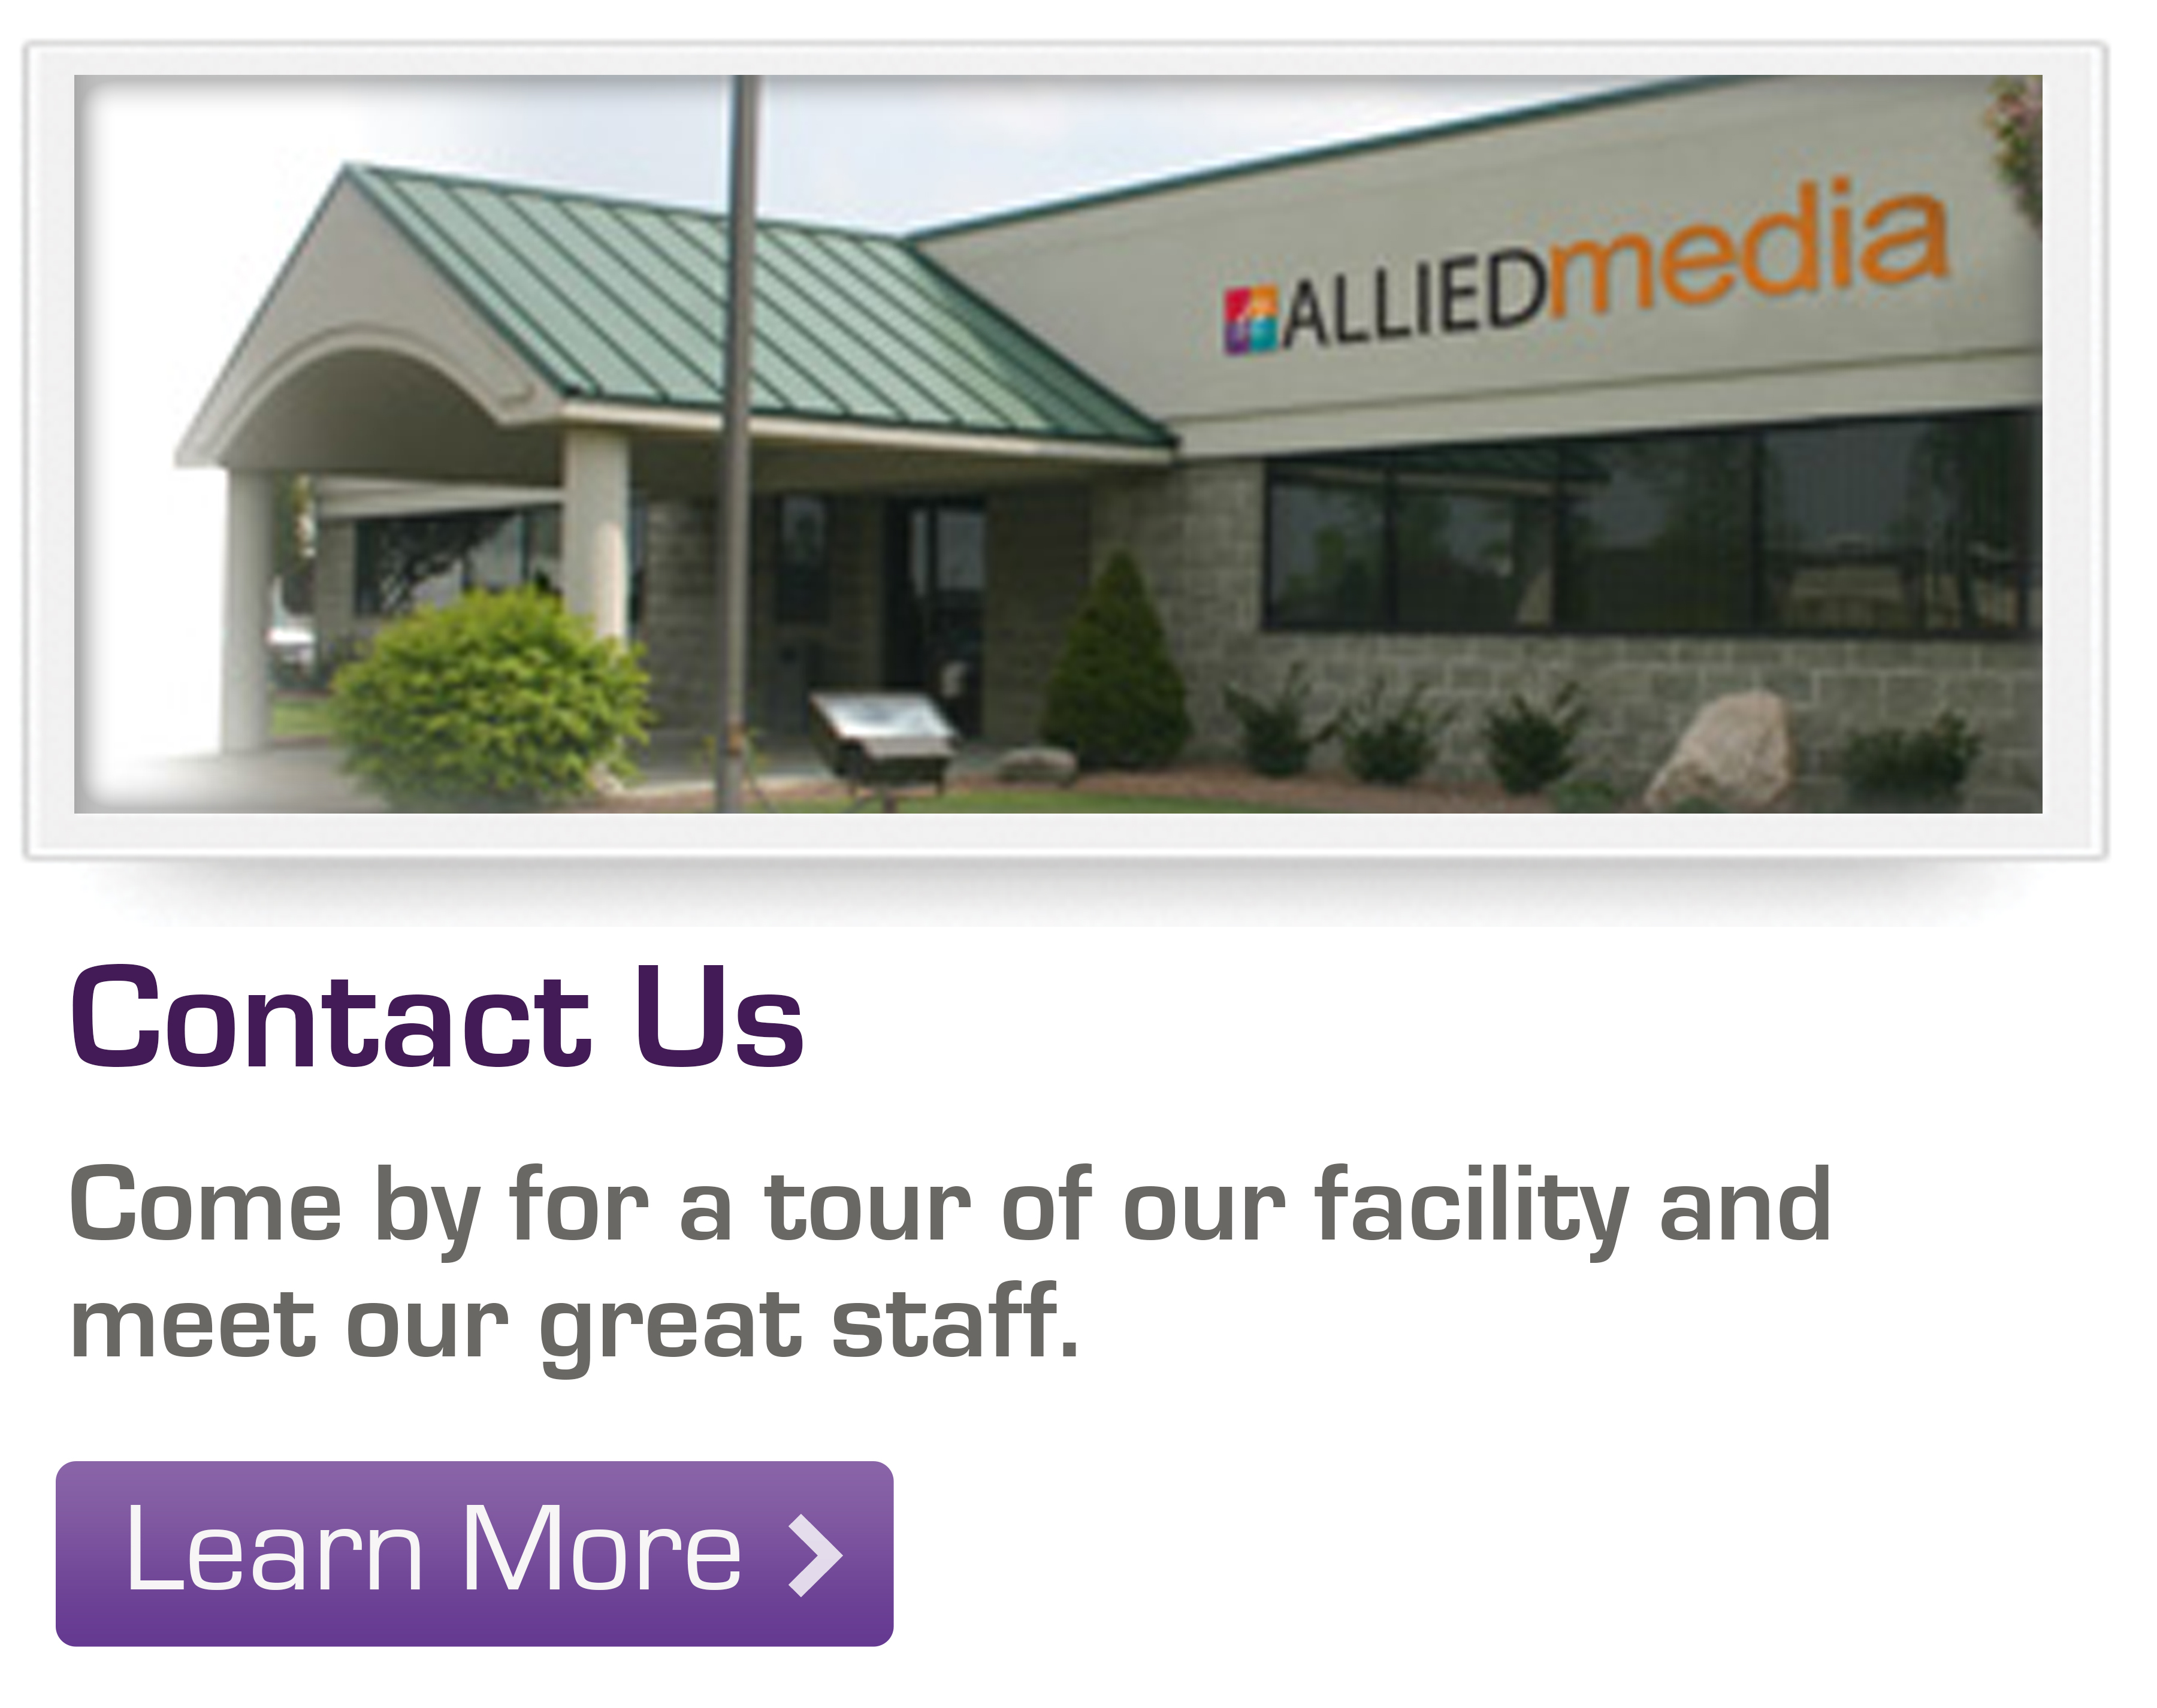 Come by for a tour of our facility and meet our great staff